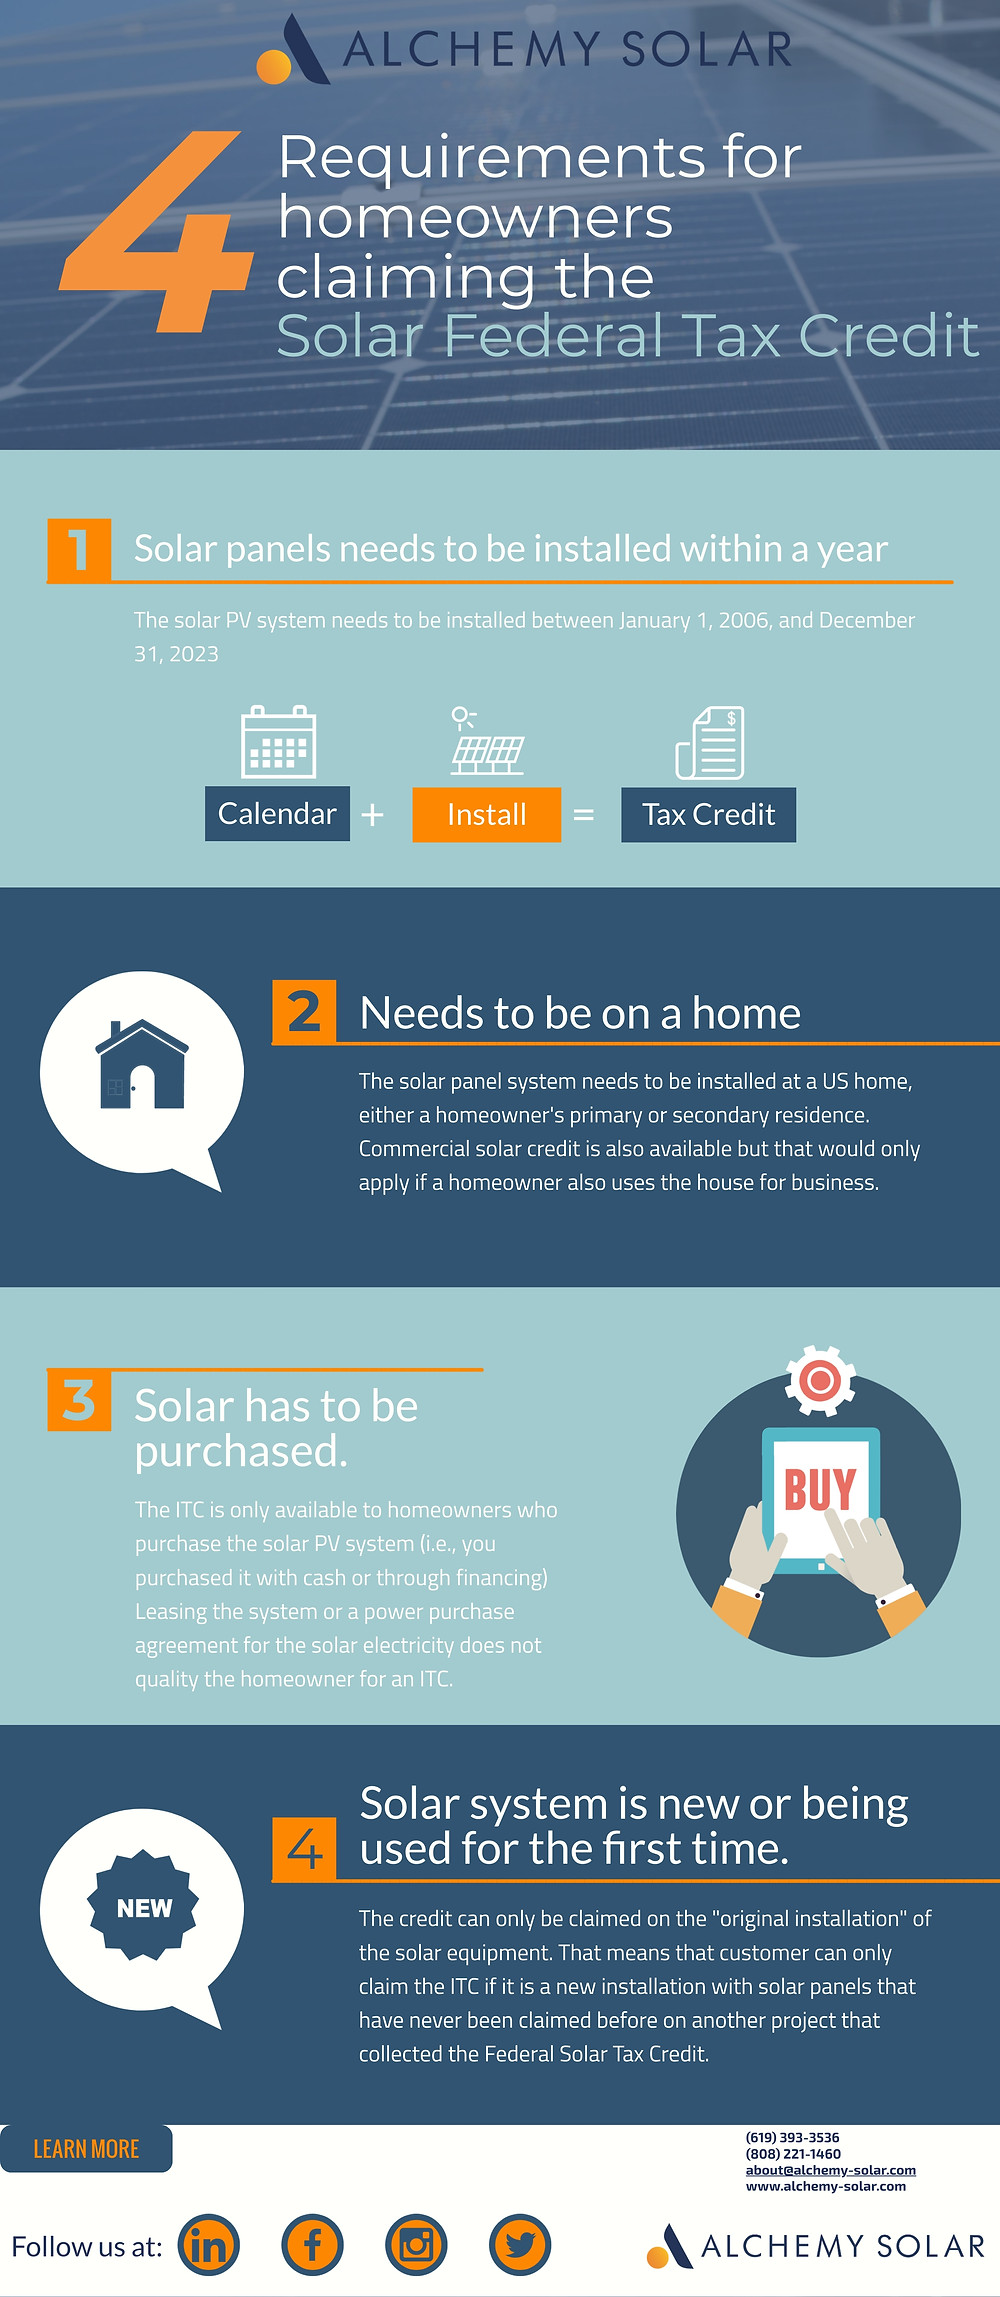 What does a homeowner need to do to collect the solar federal tax credit (ITC)